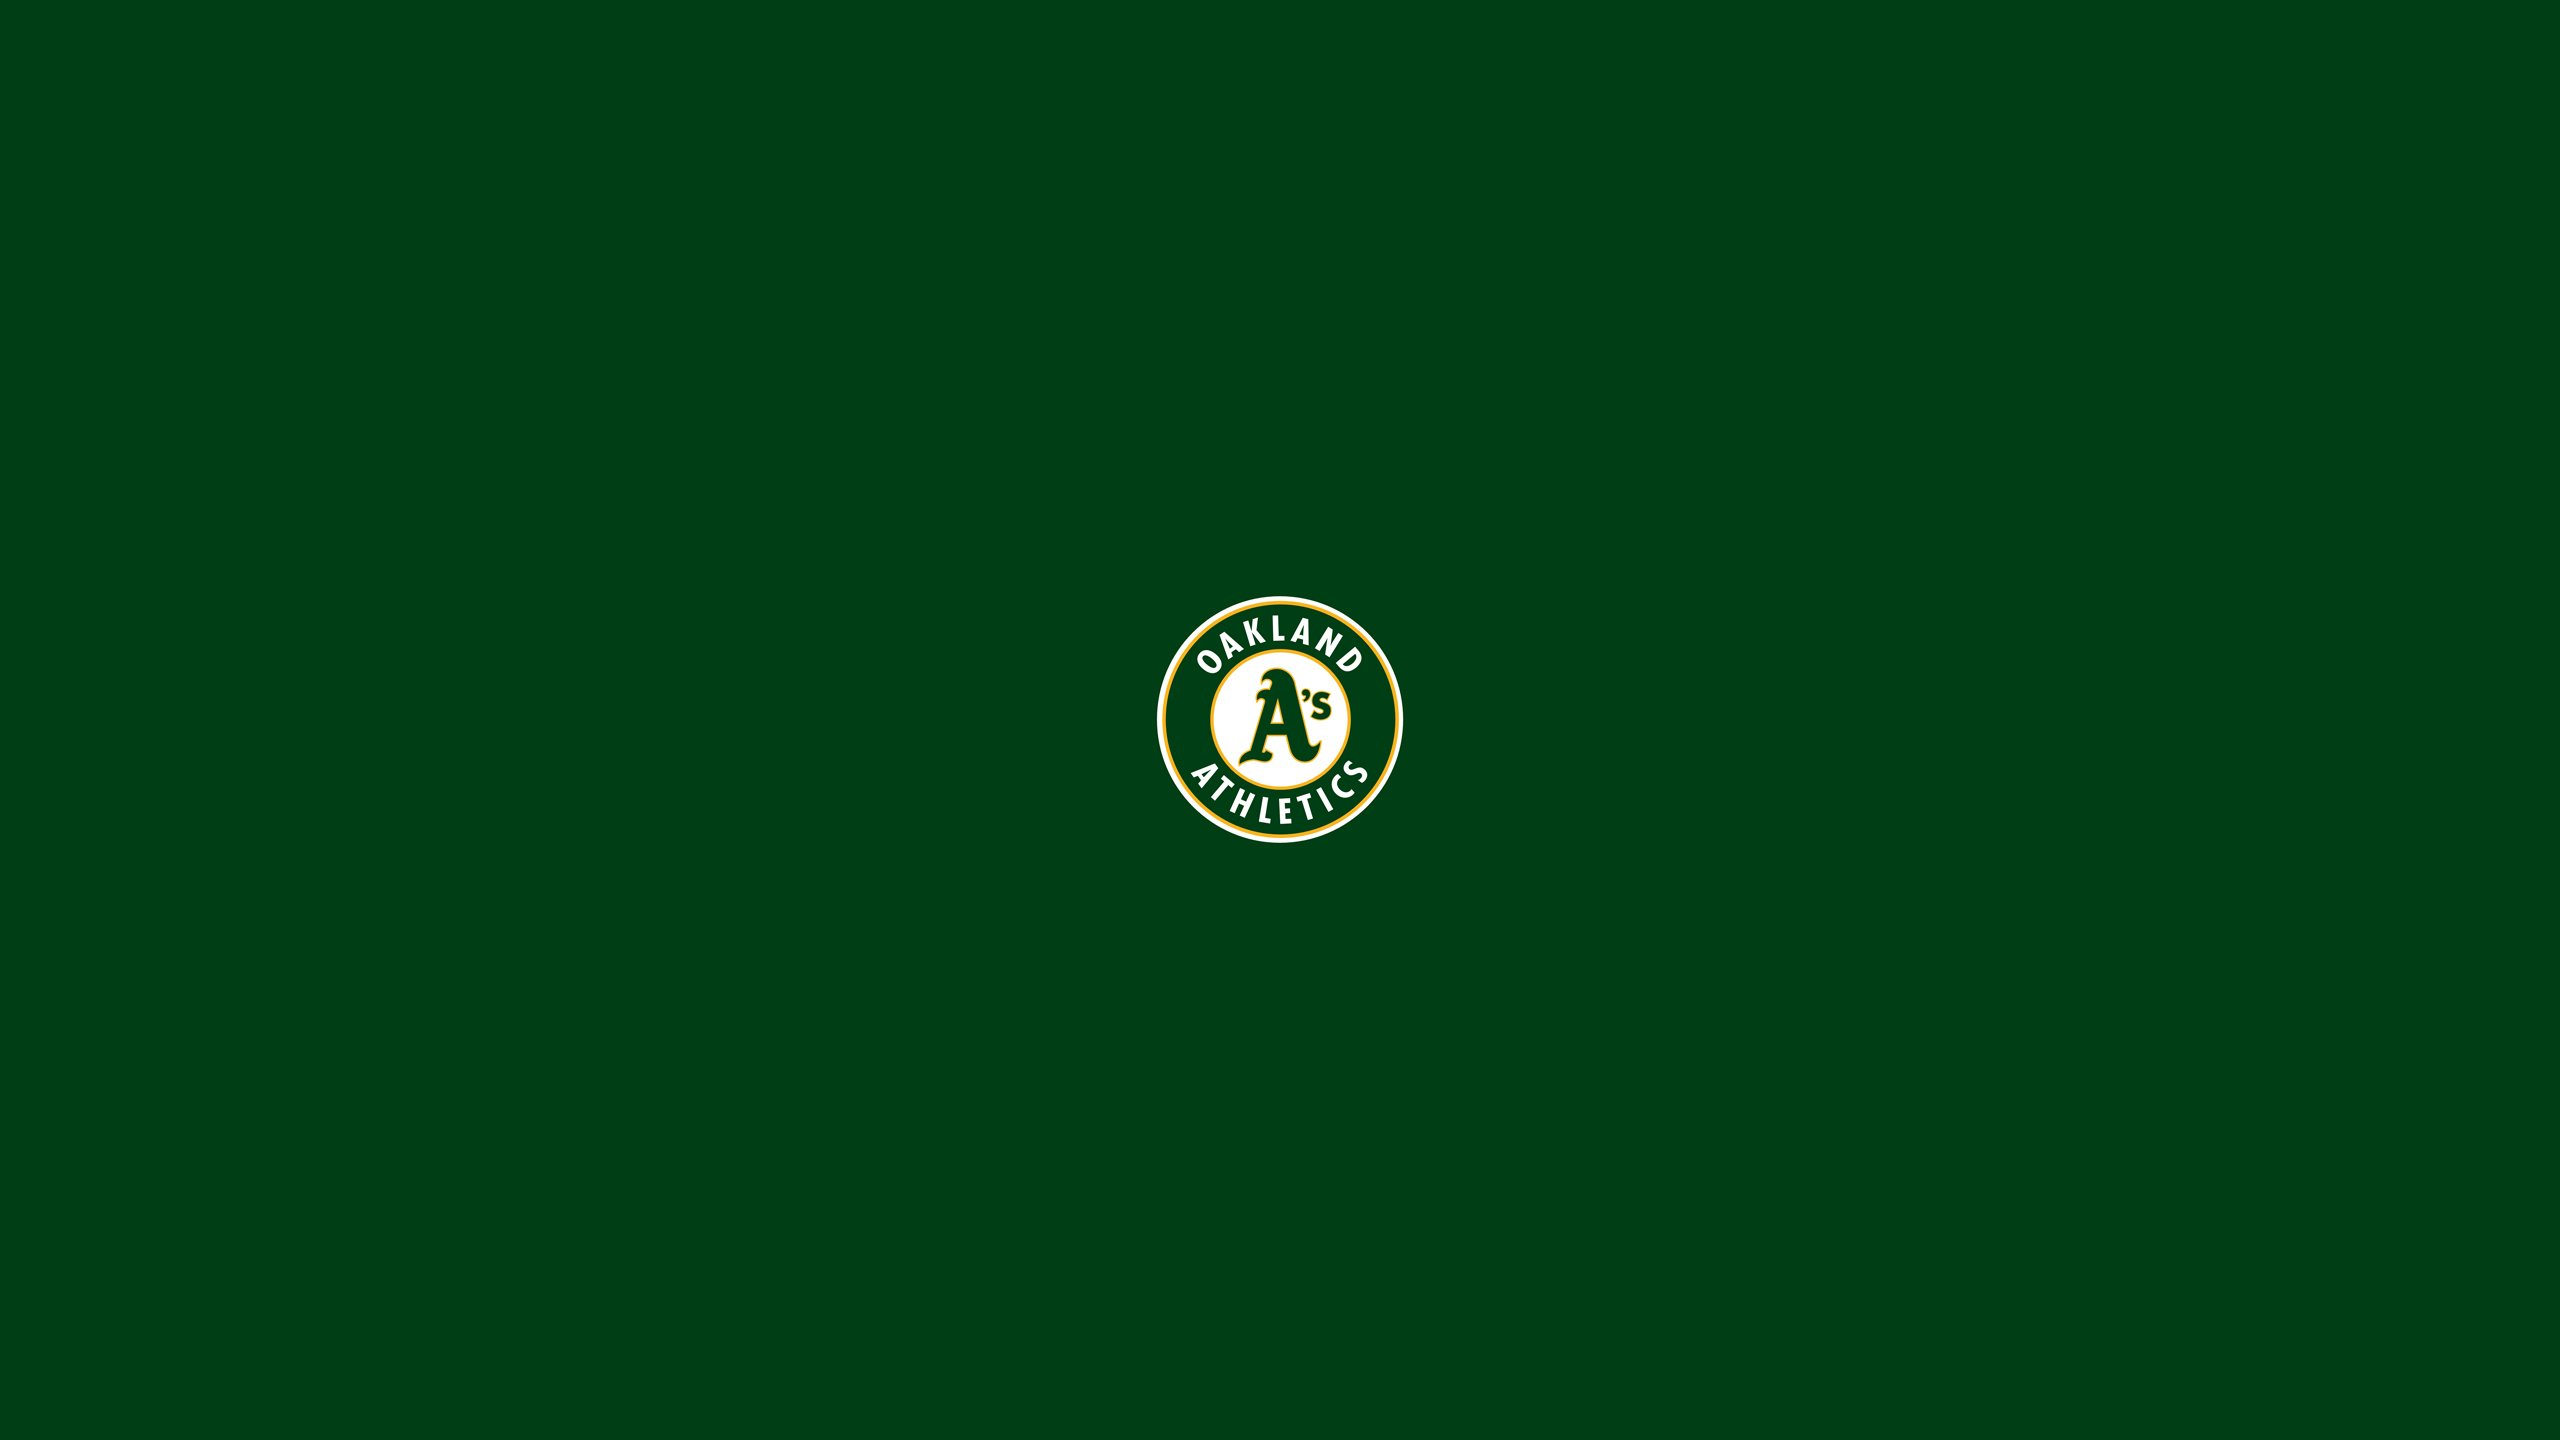 OAKLAND ATHLETICS mlb baseball 50 wallpaper 2560x1440 319119 2560x1440